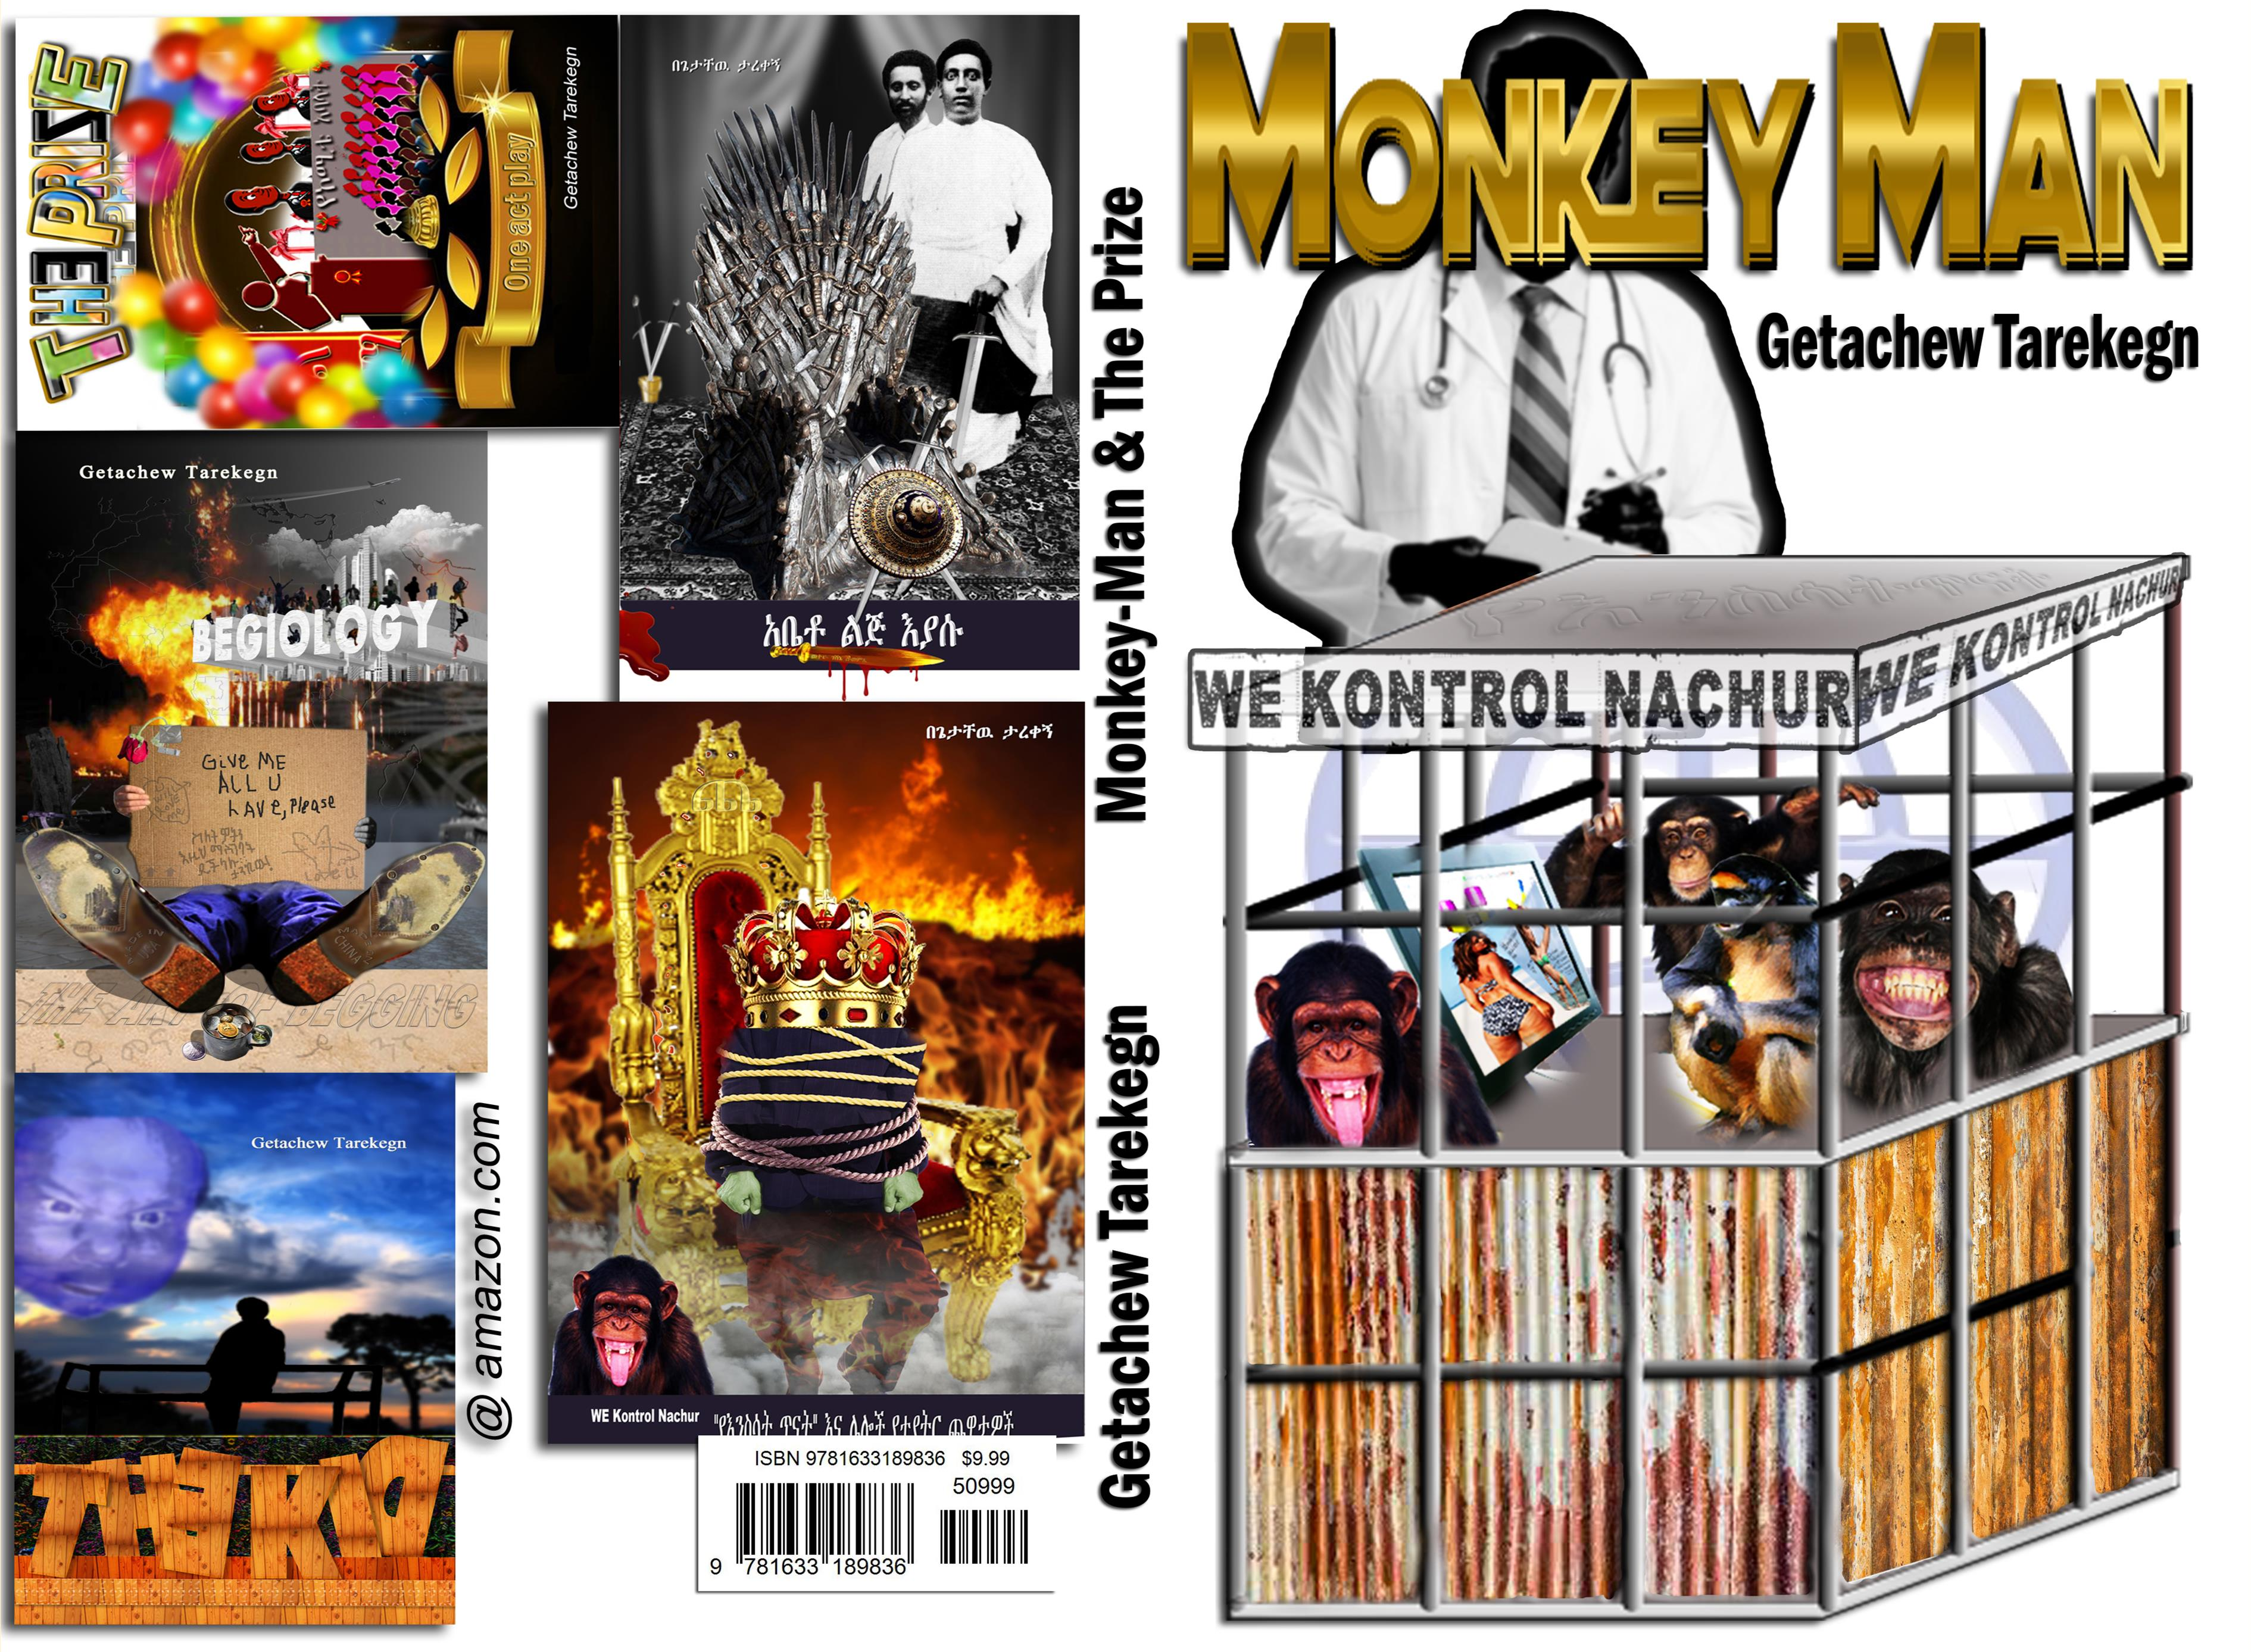 Monkey-Man cover image